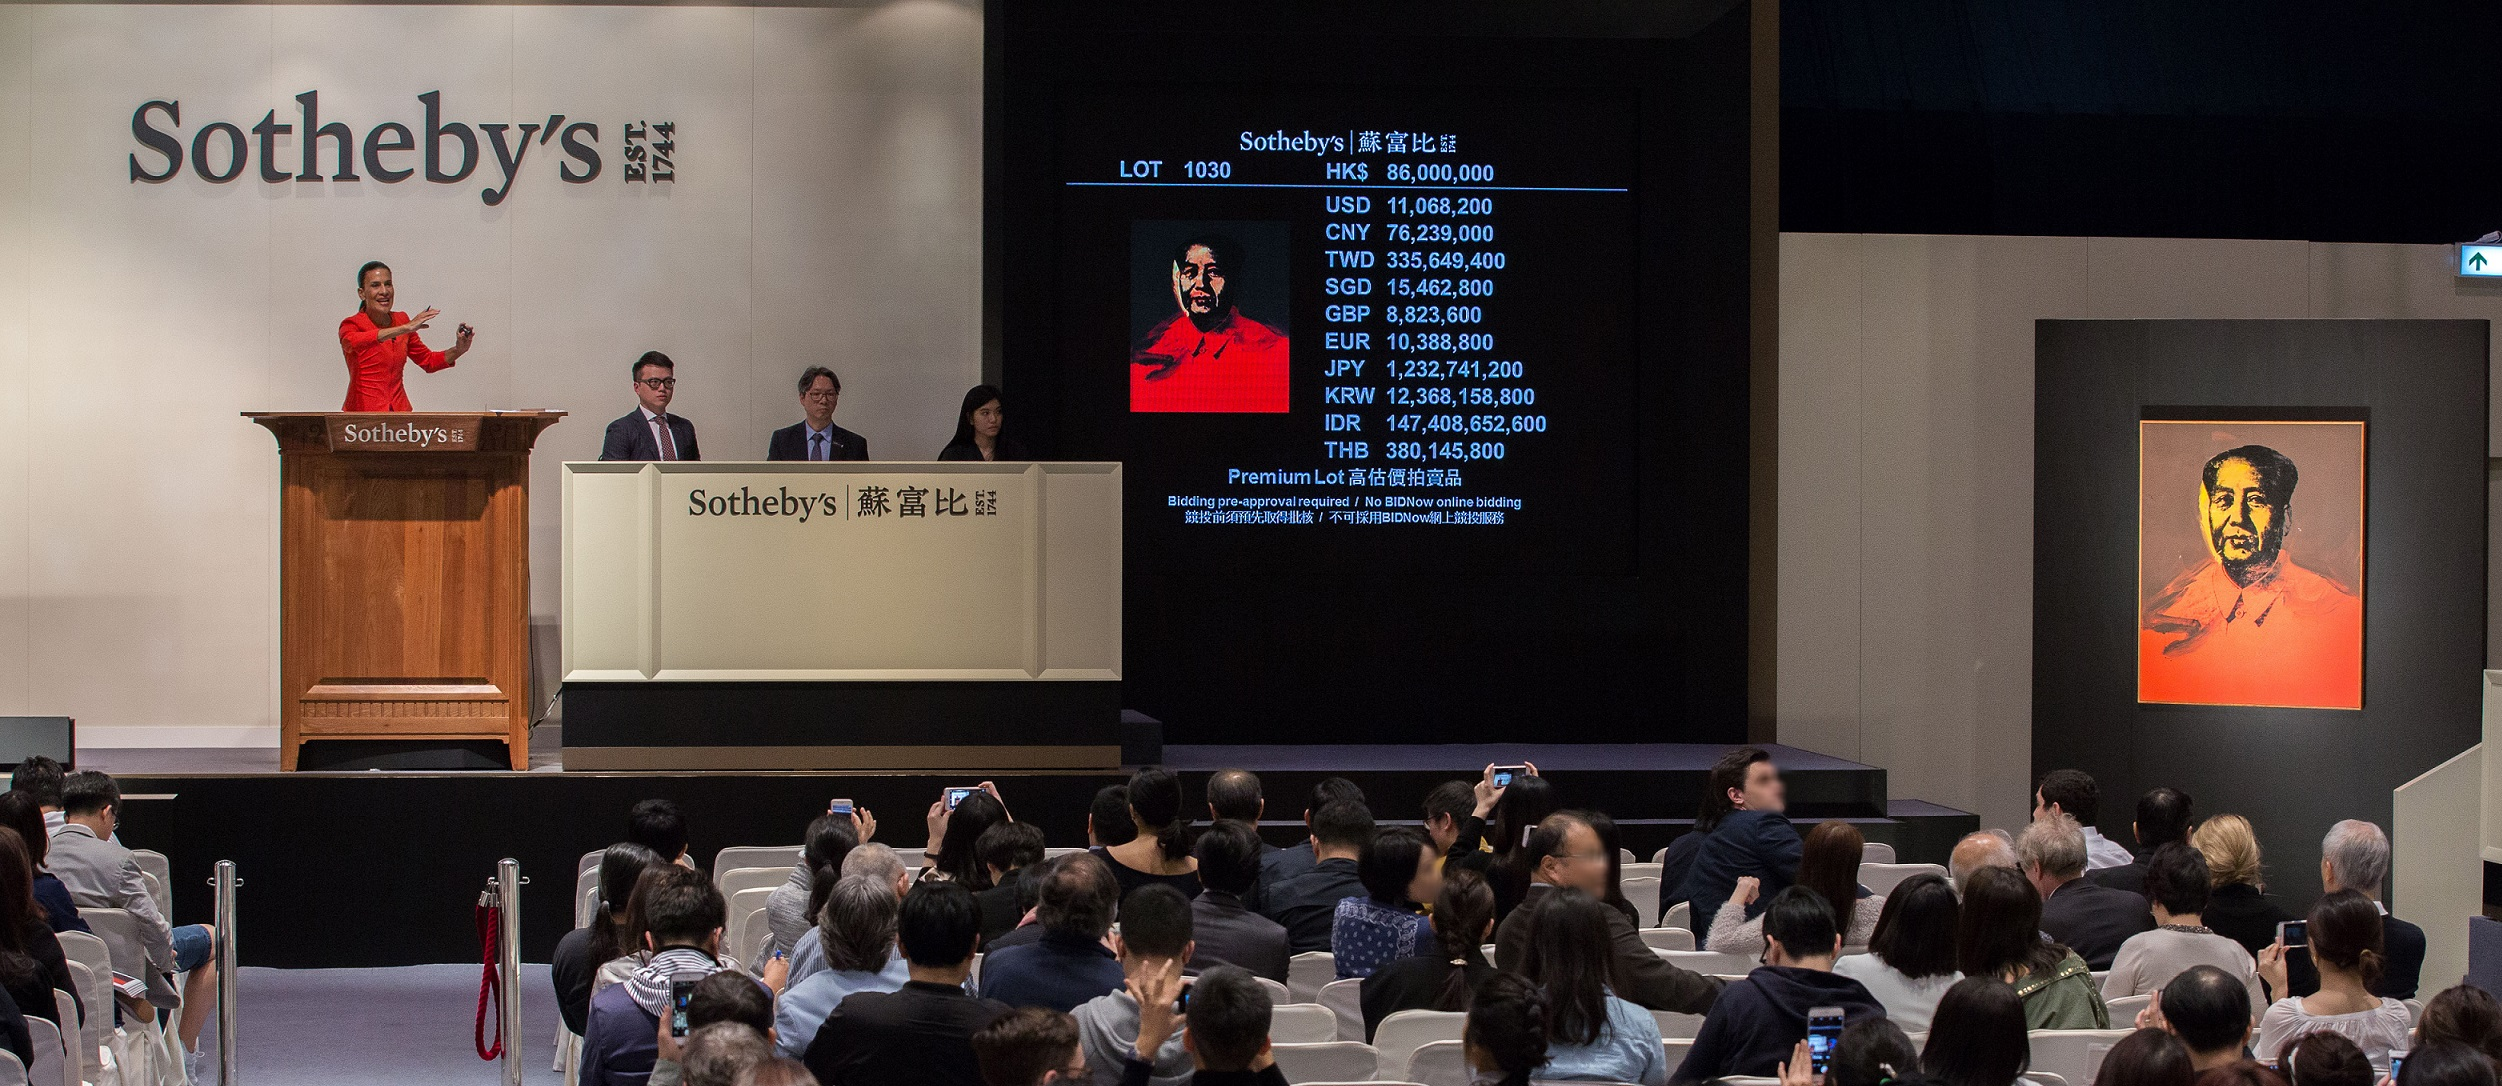 Sothebys Auction Results >> Sotheby S Hong Kong Spring 2017 Modern And Contemporary Art Evening